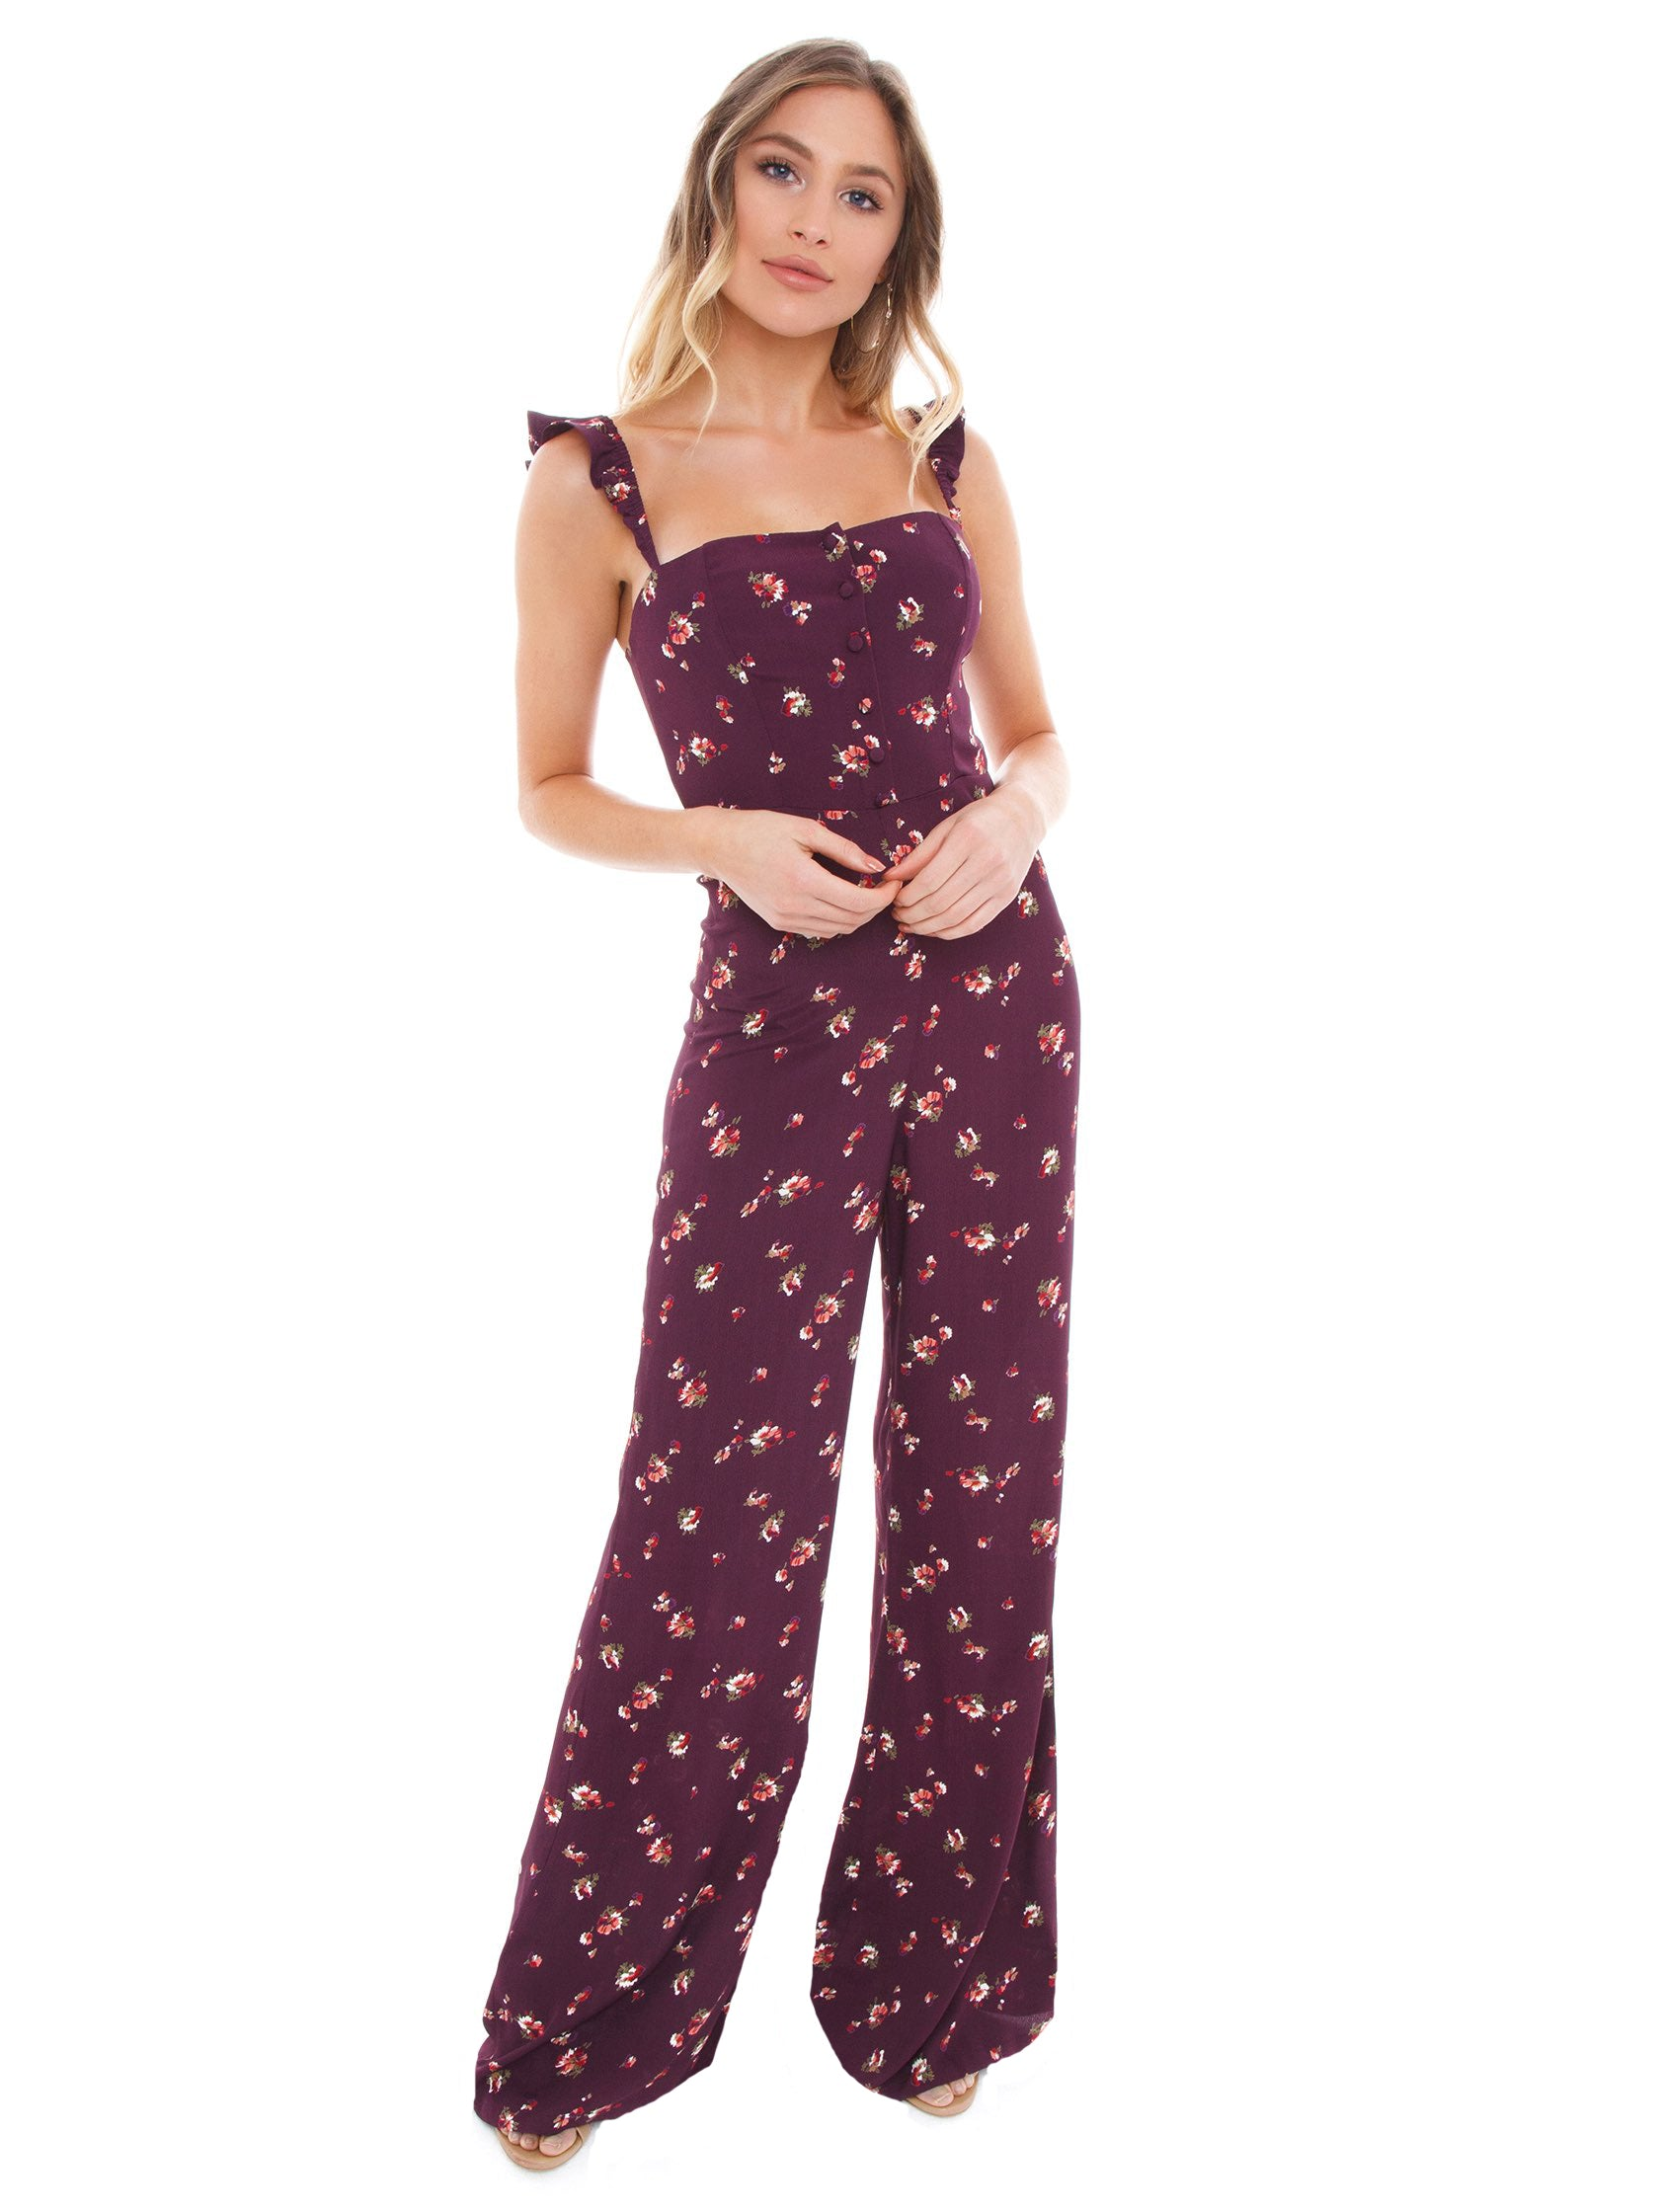 Girl outfit in a jumpsuit rental from Flynn Skye called Bardot Jumper